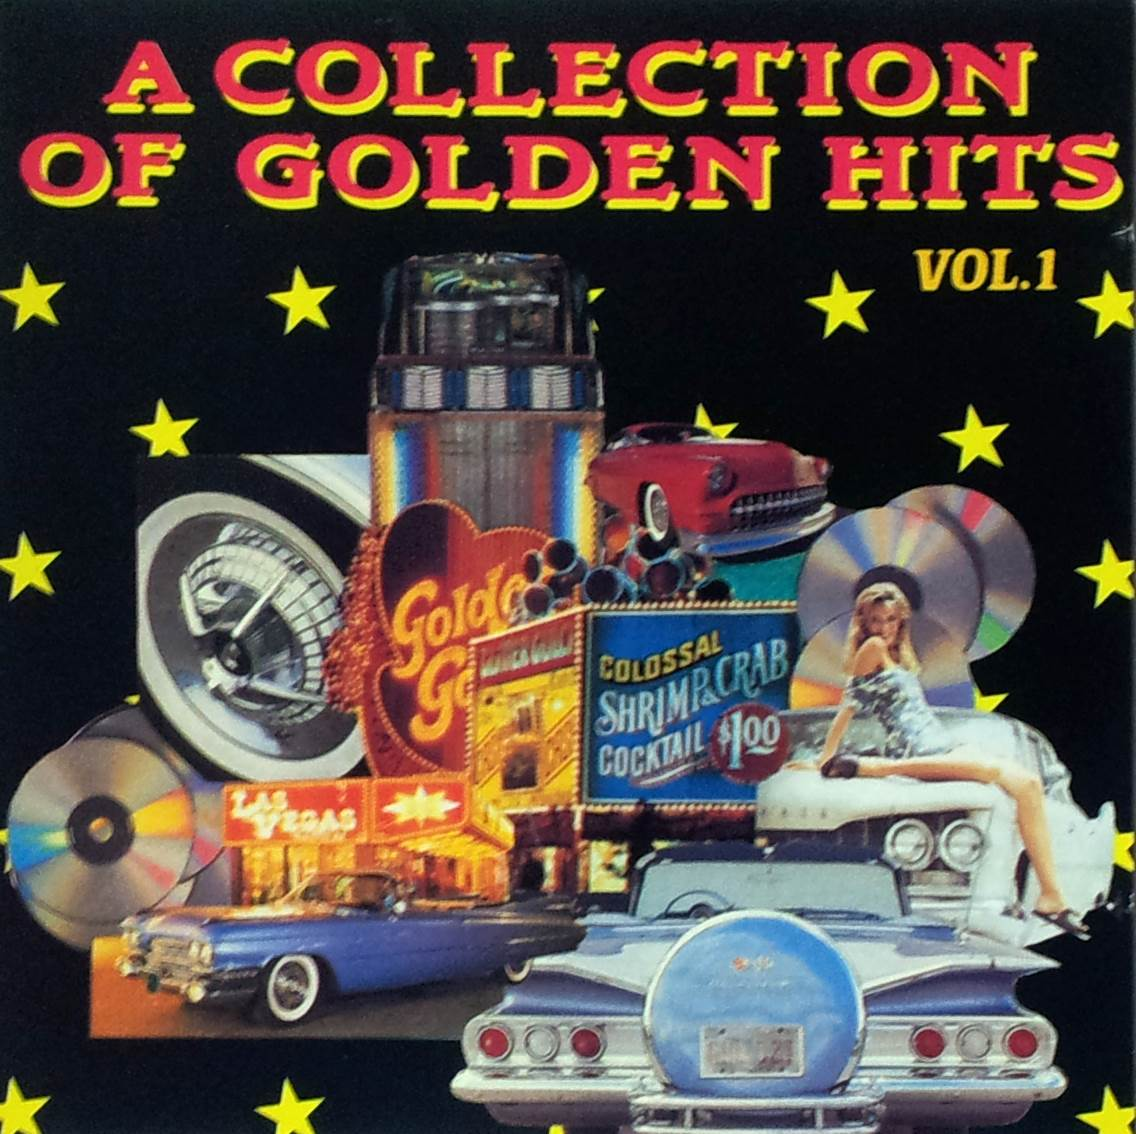 A Collection of golden Hits Vol. 1